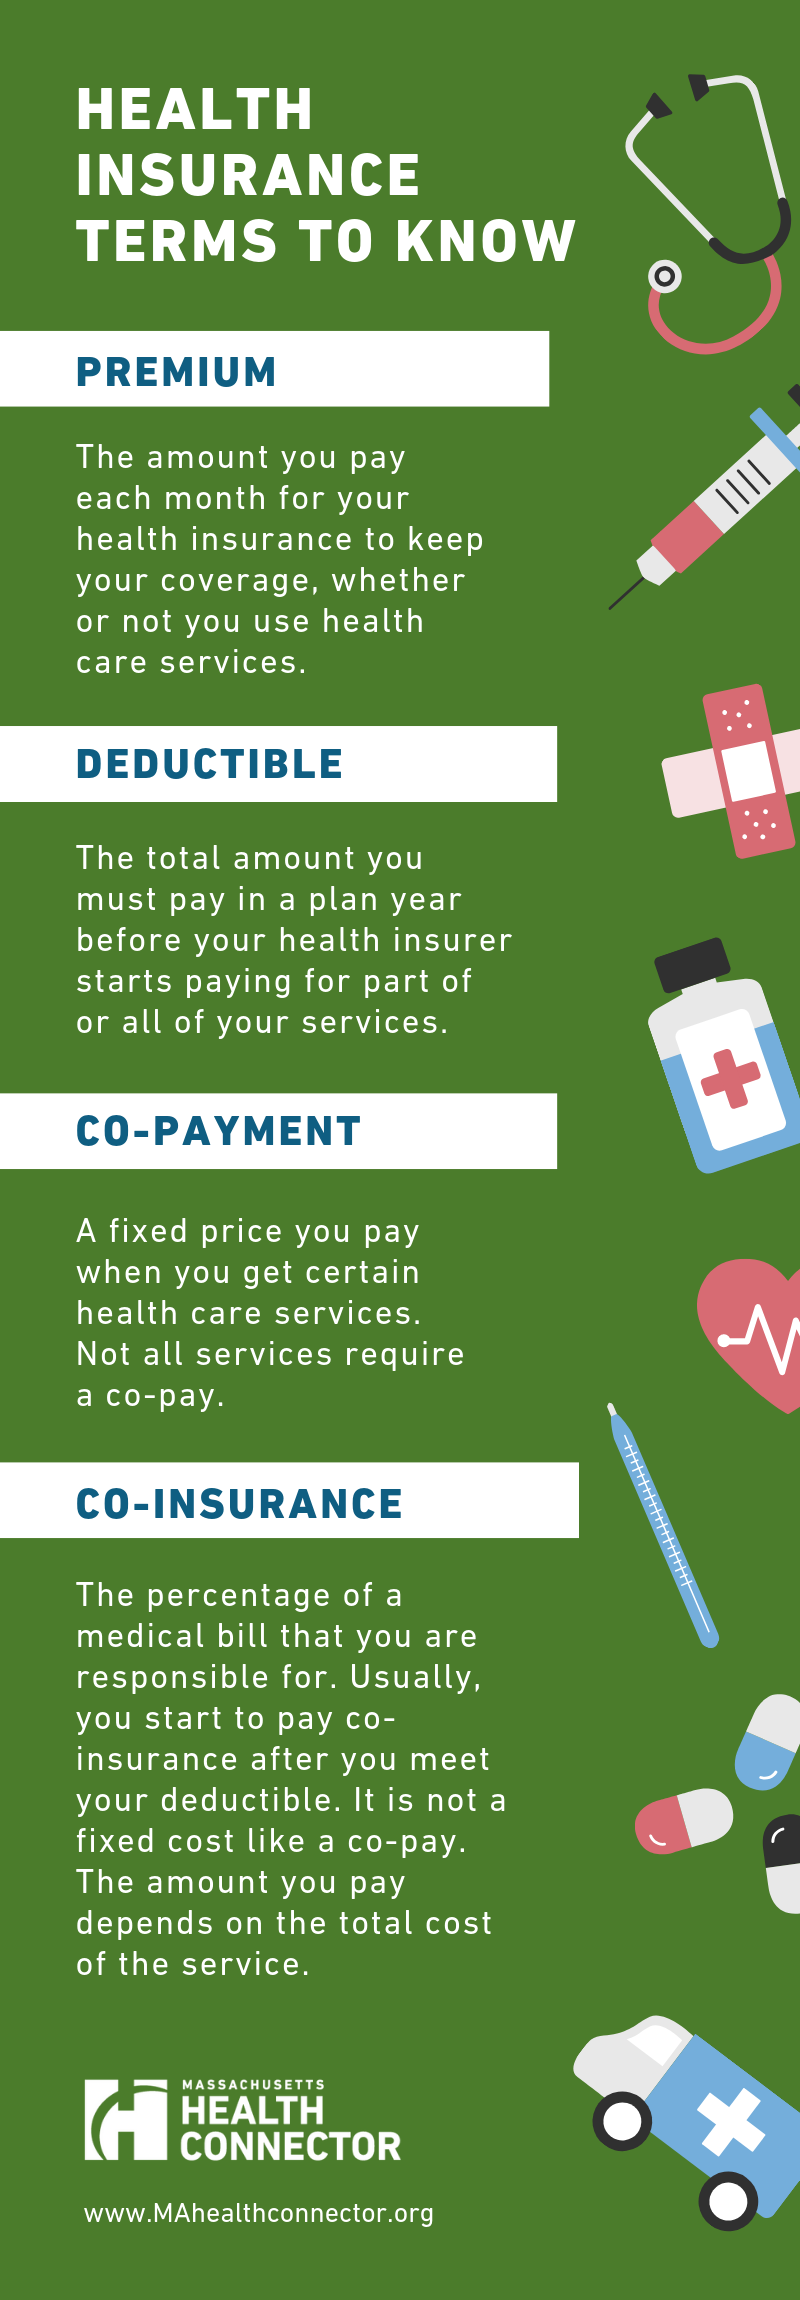 Infographic that defines the terms premium, deductible, co-payment, and co-insurance